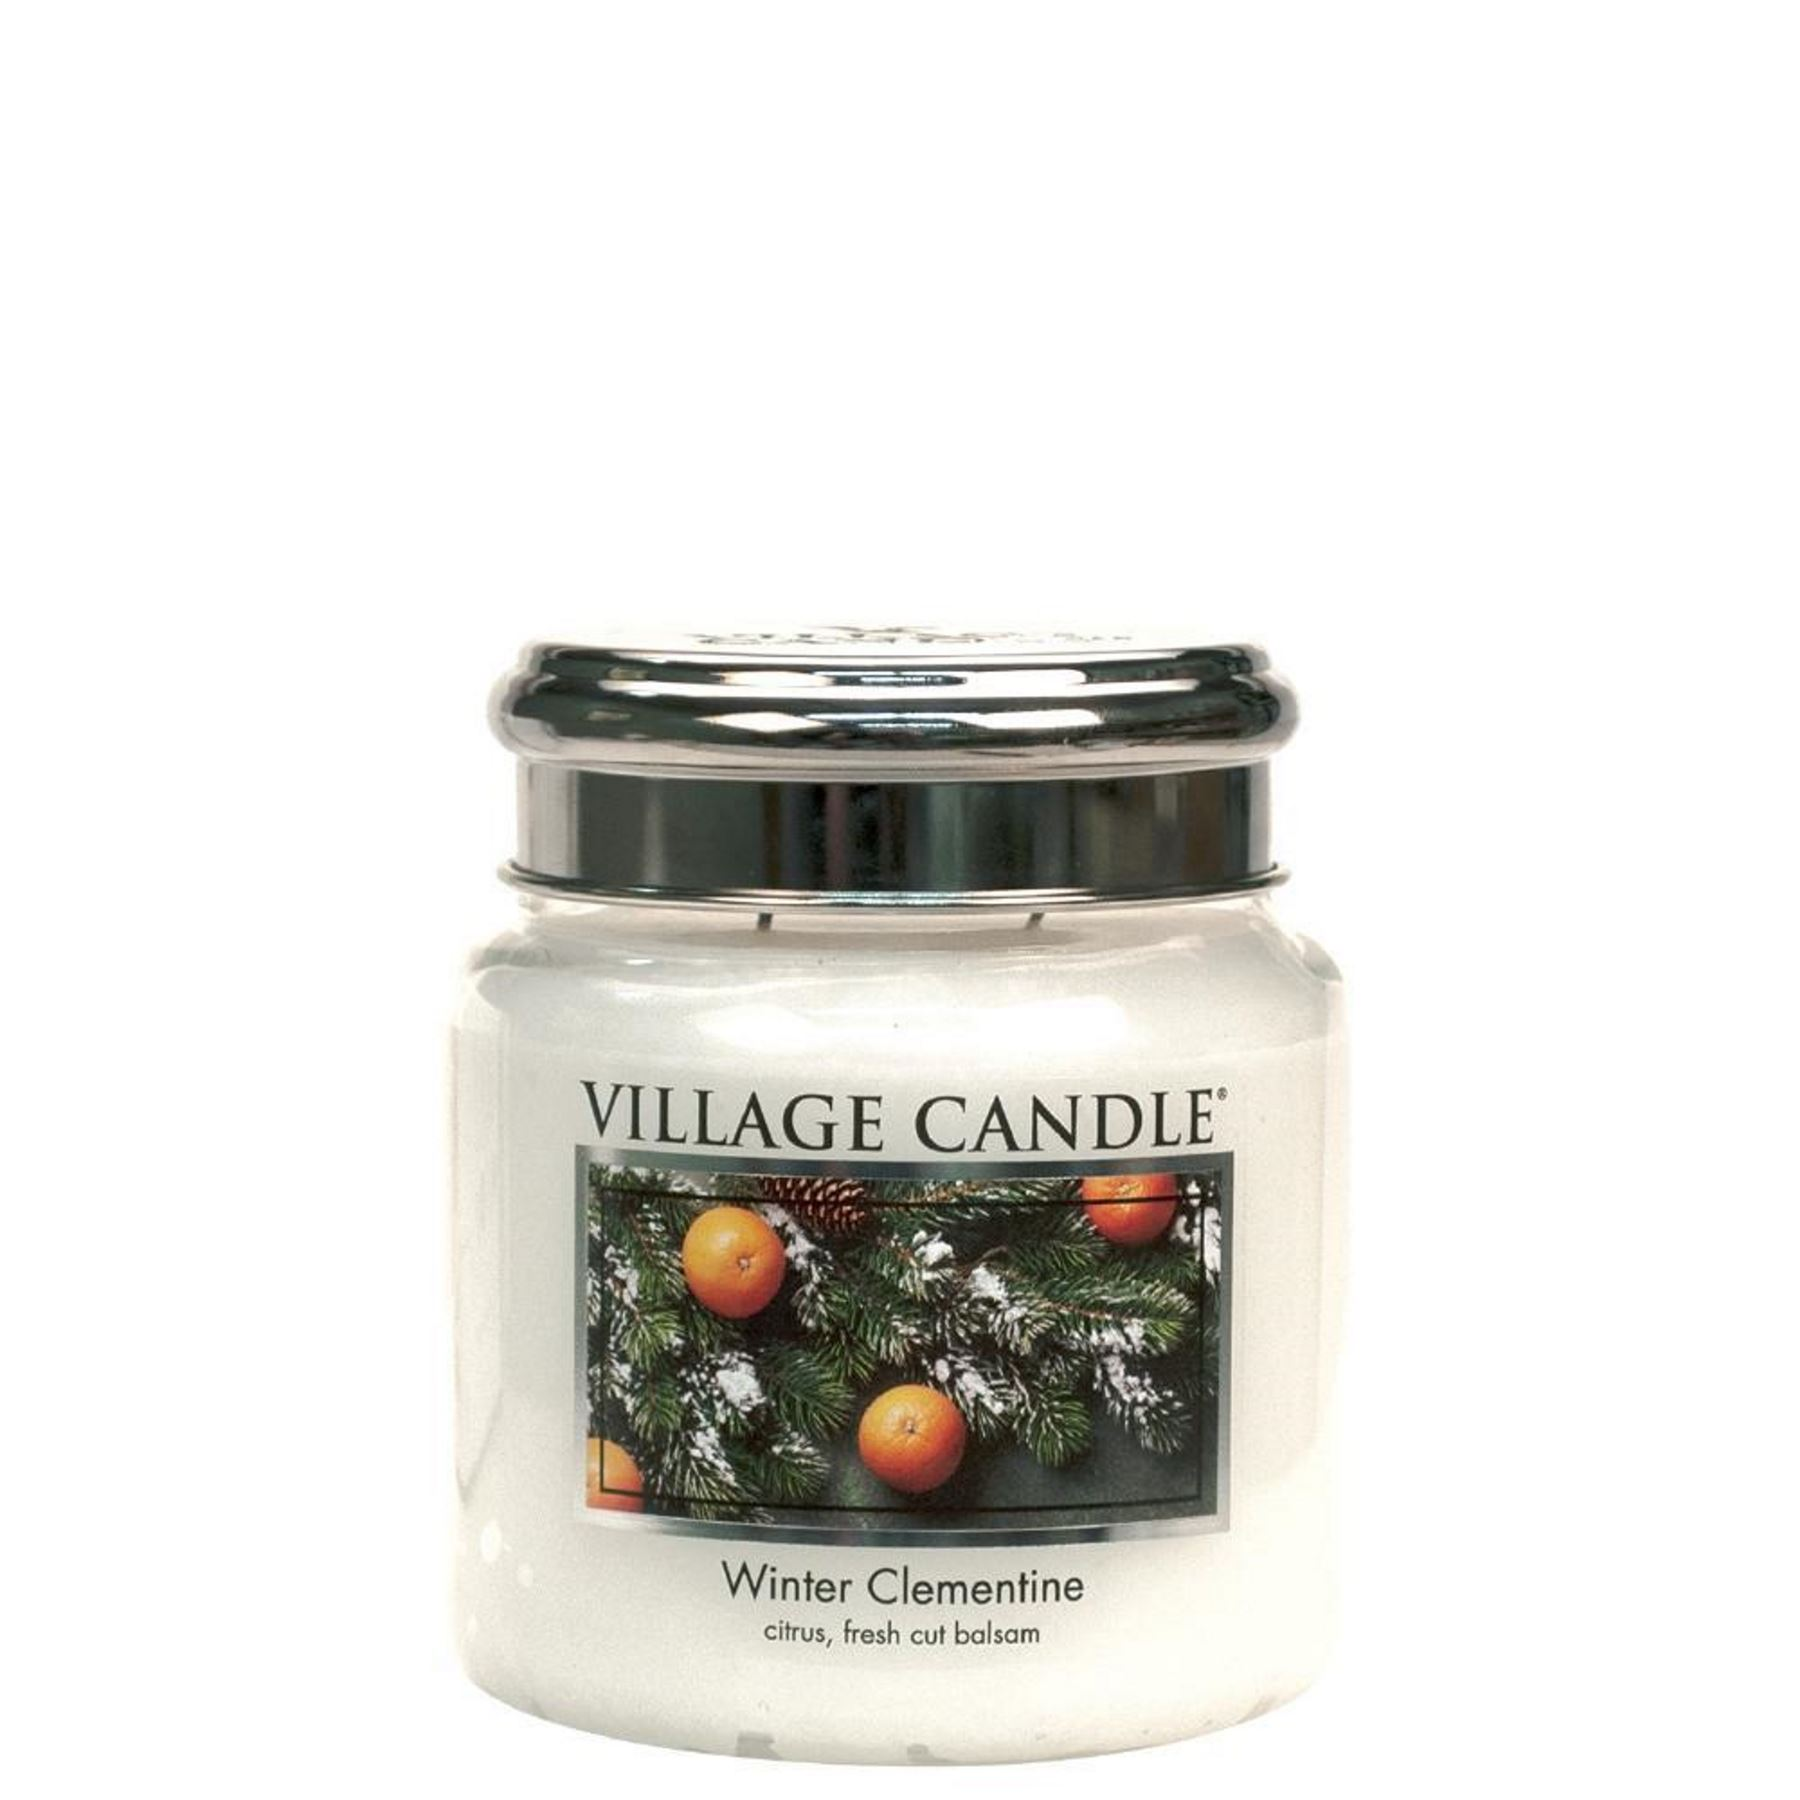 Village Candle Winter Clementine 26 oz Glass Jar Scented Candle Large